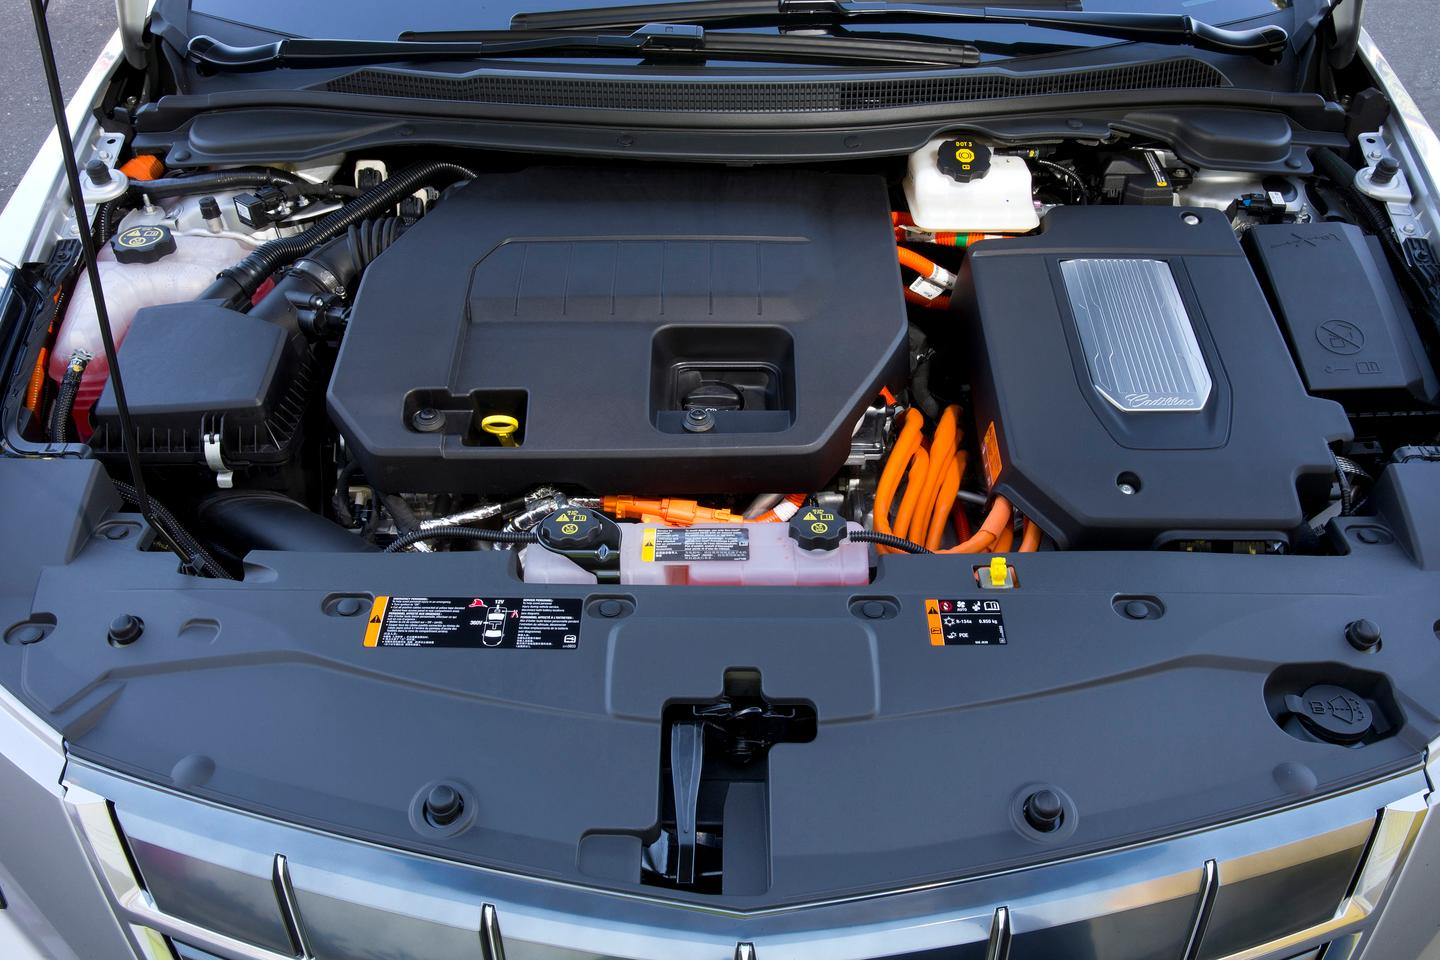 Quiet and clean, too: under the hood of the Cadillac ELR